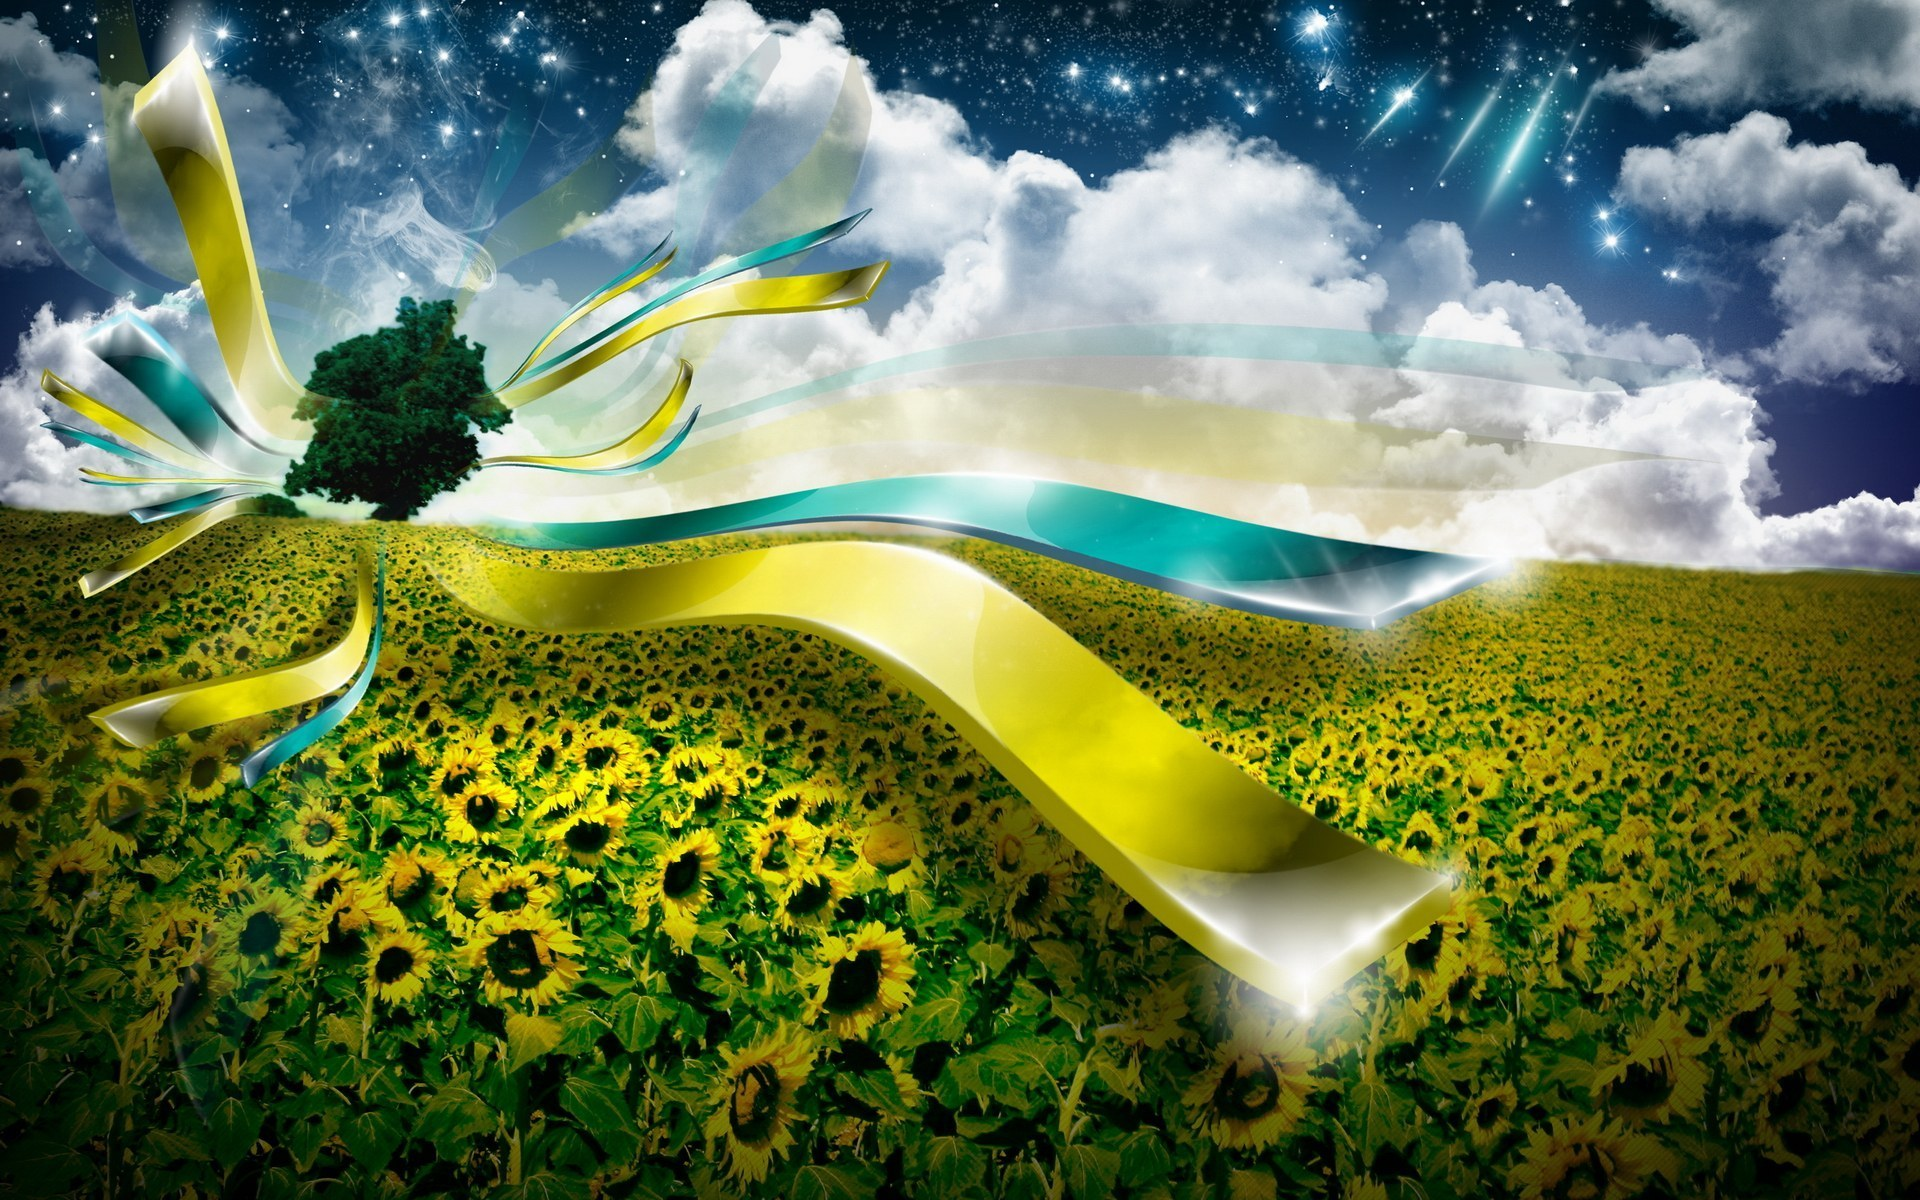 Ukrainian Flag - Ukraine Wallpaper (21362775) - Fanpop fanclubs